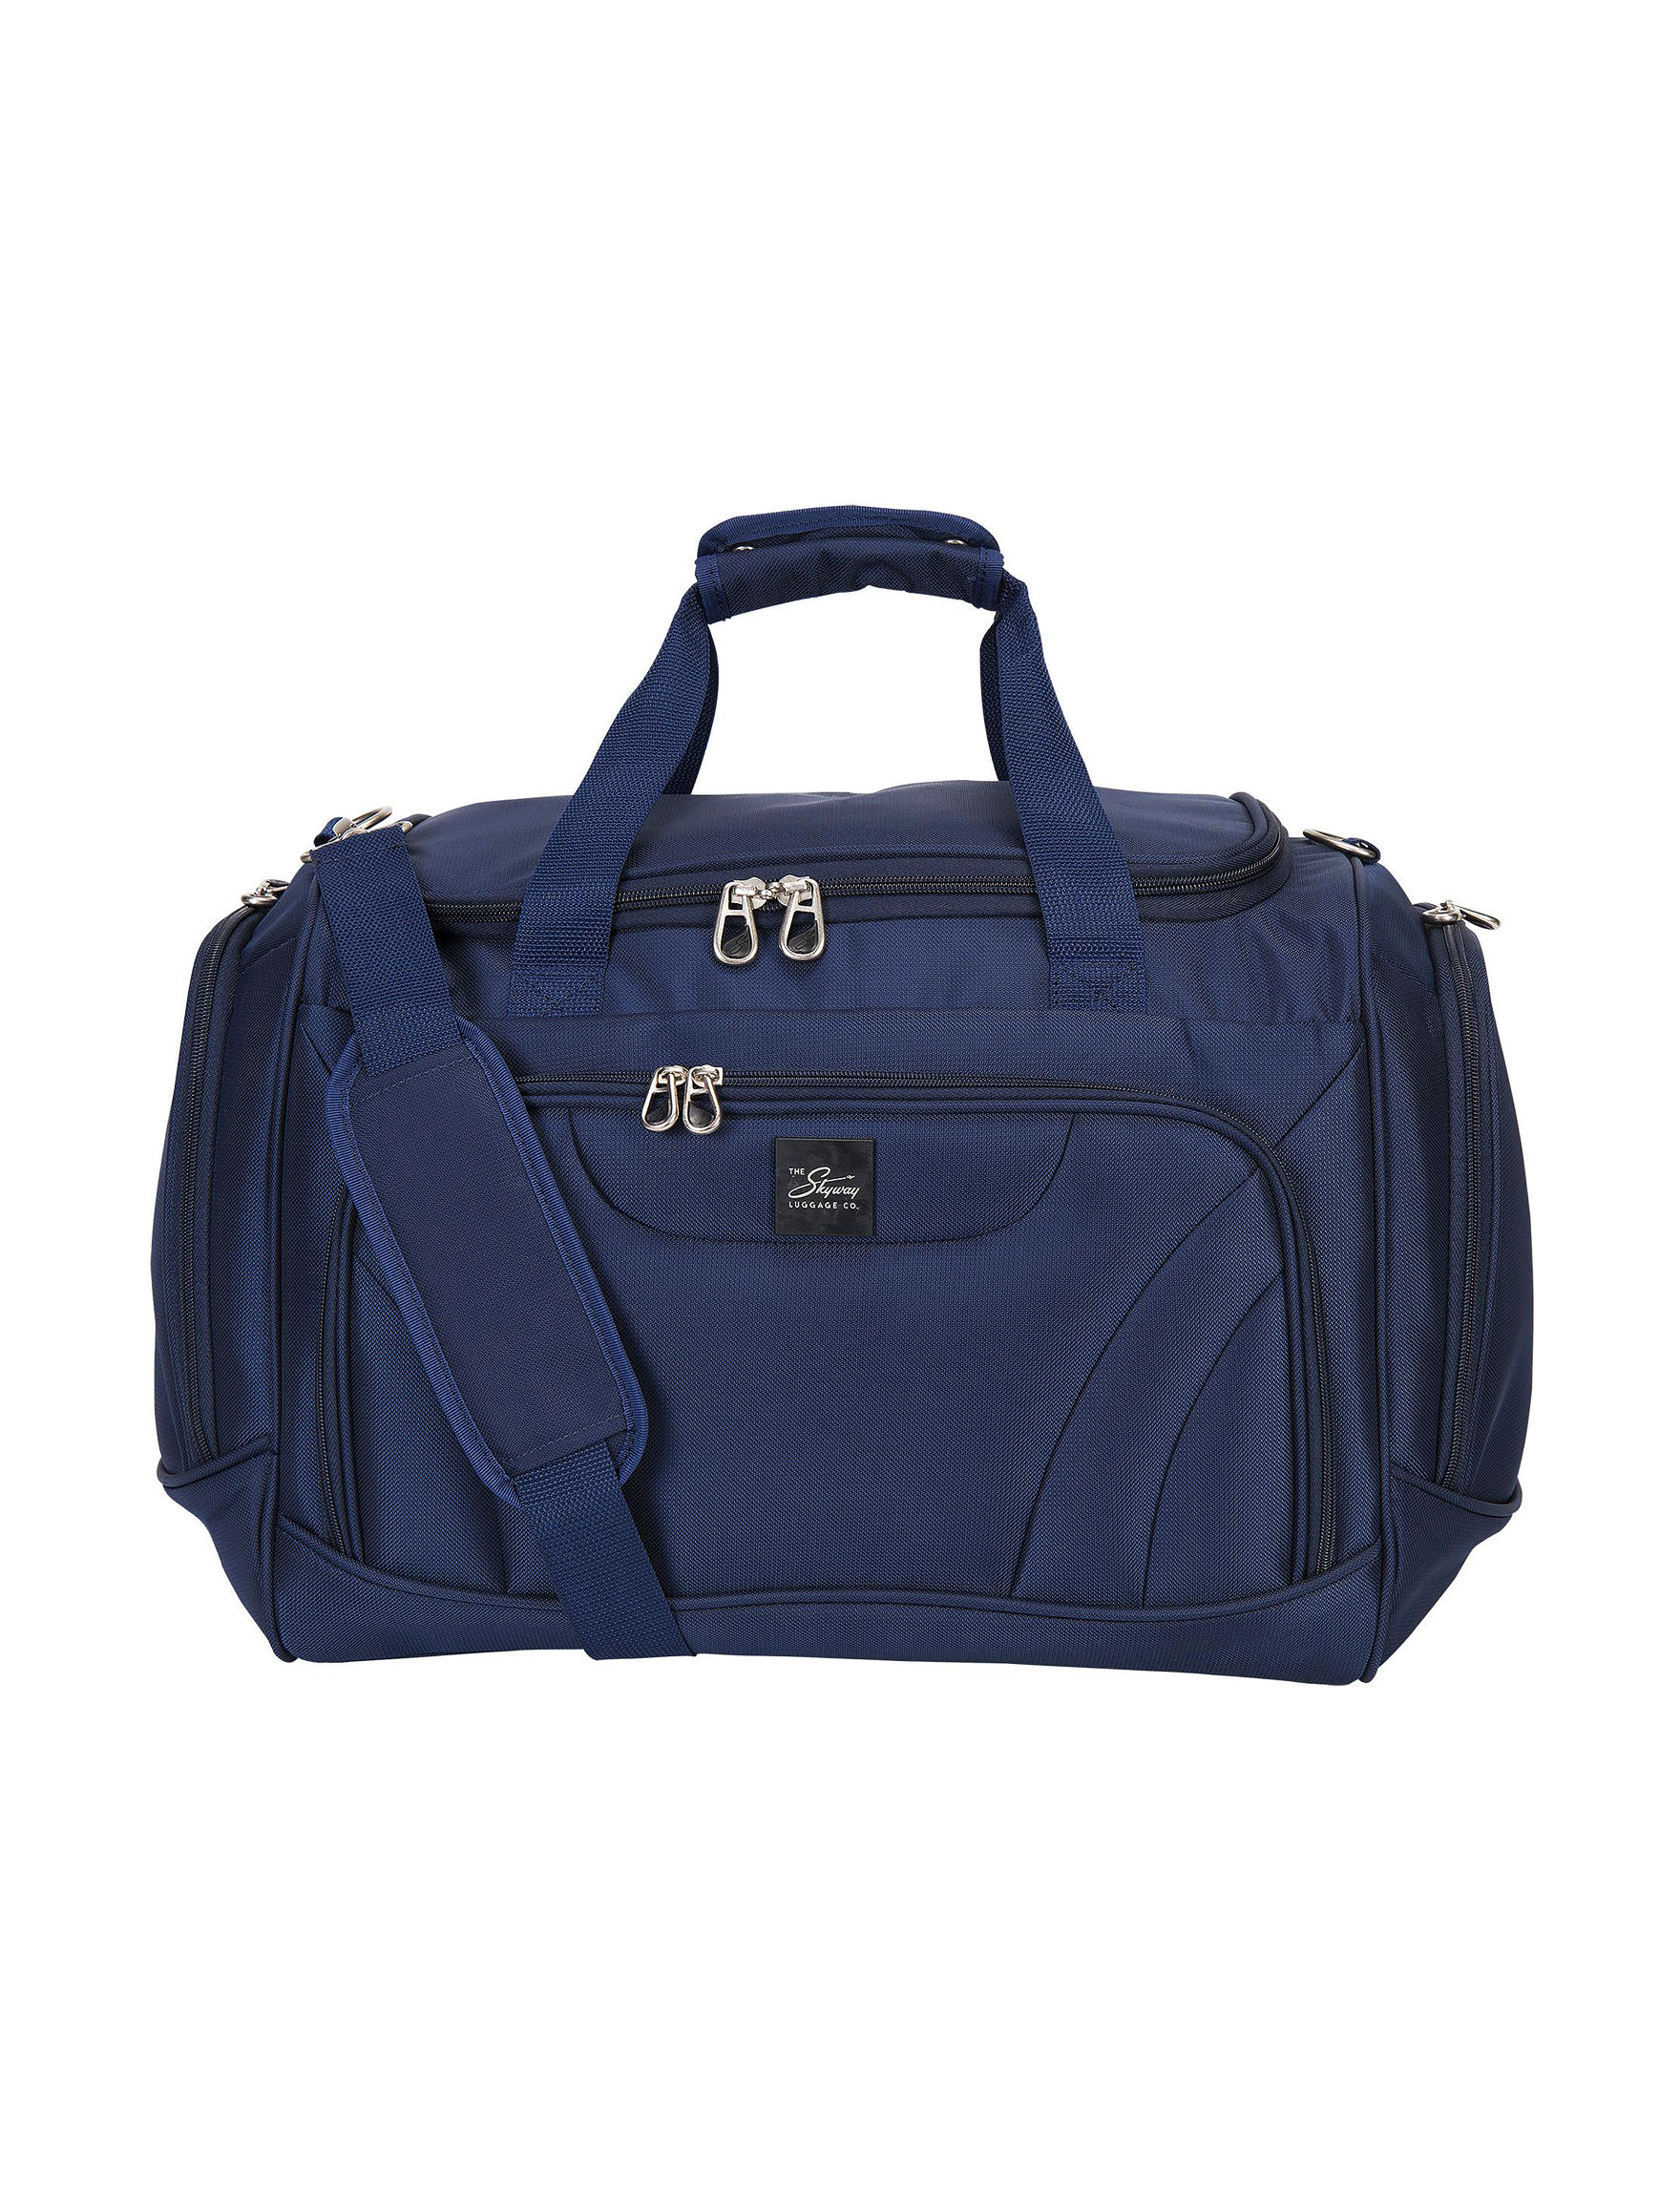 Skyway Blue Duffle Bags